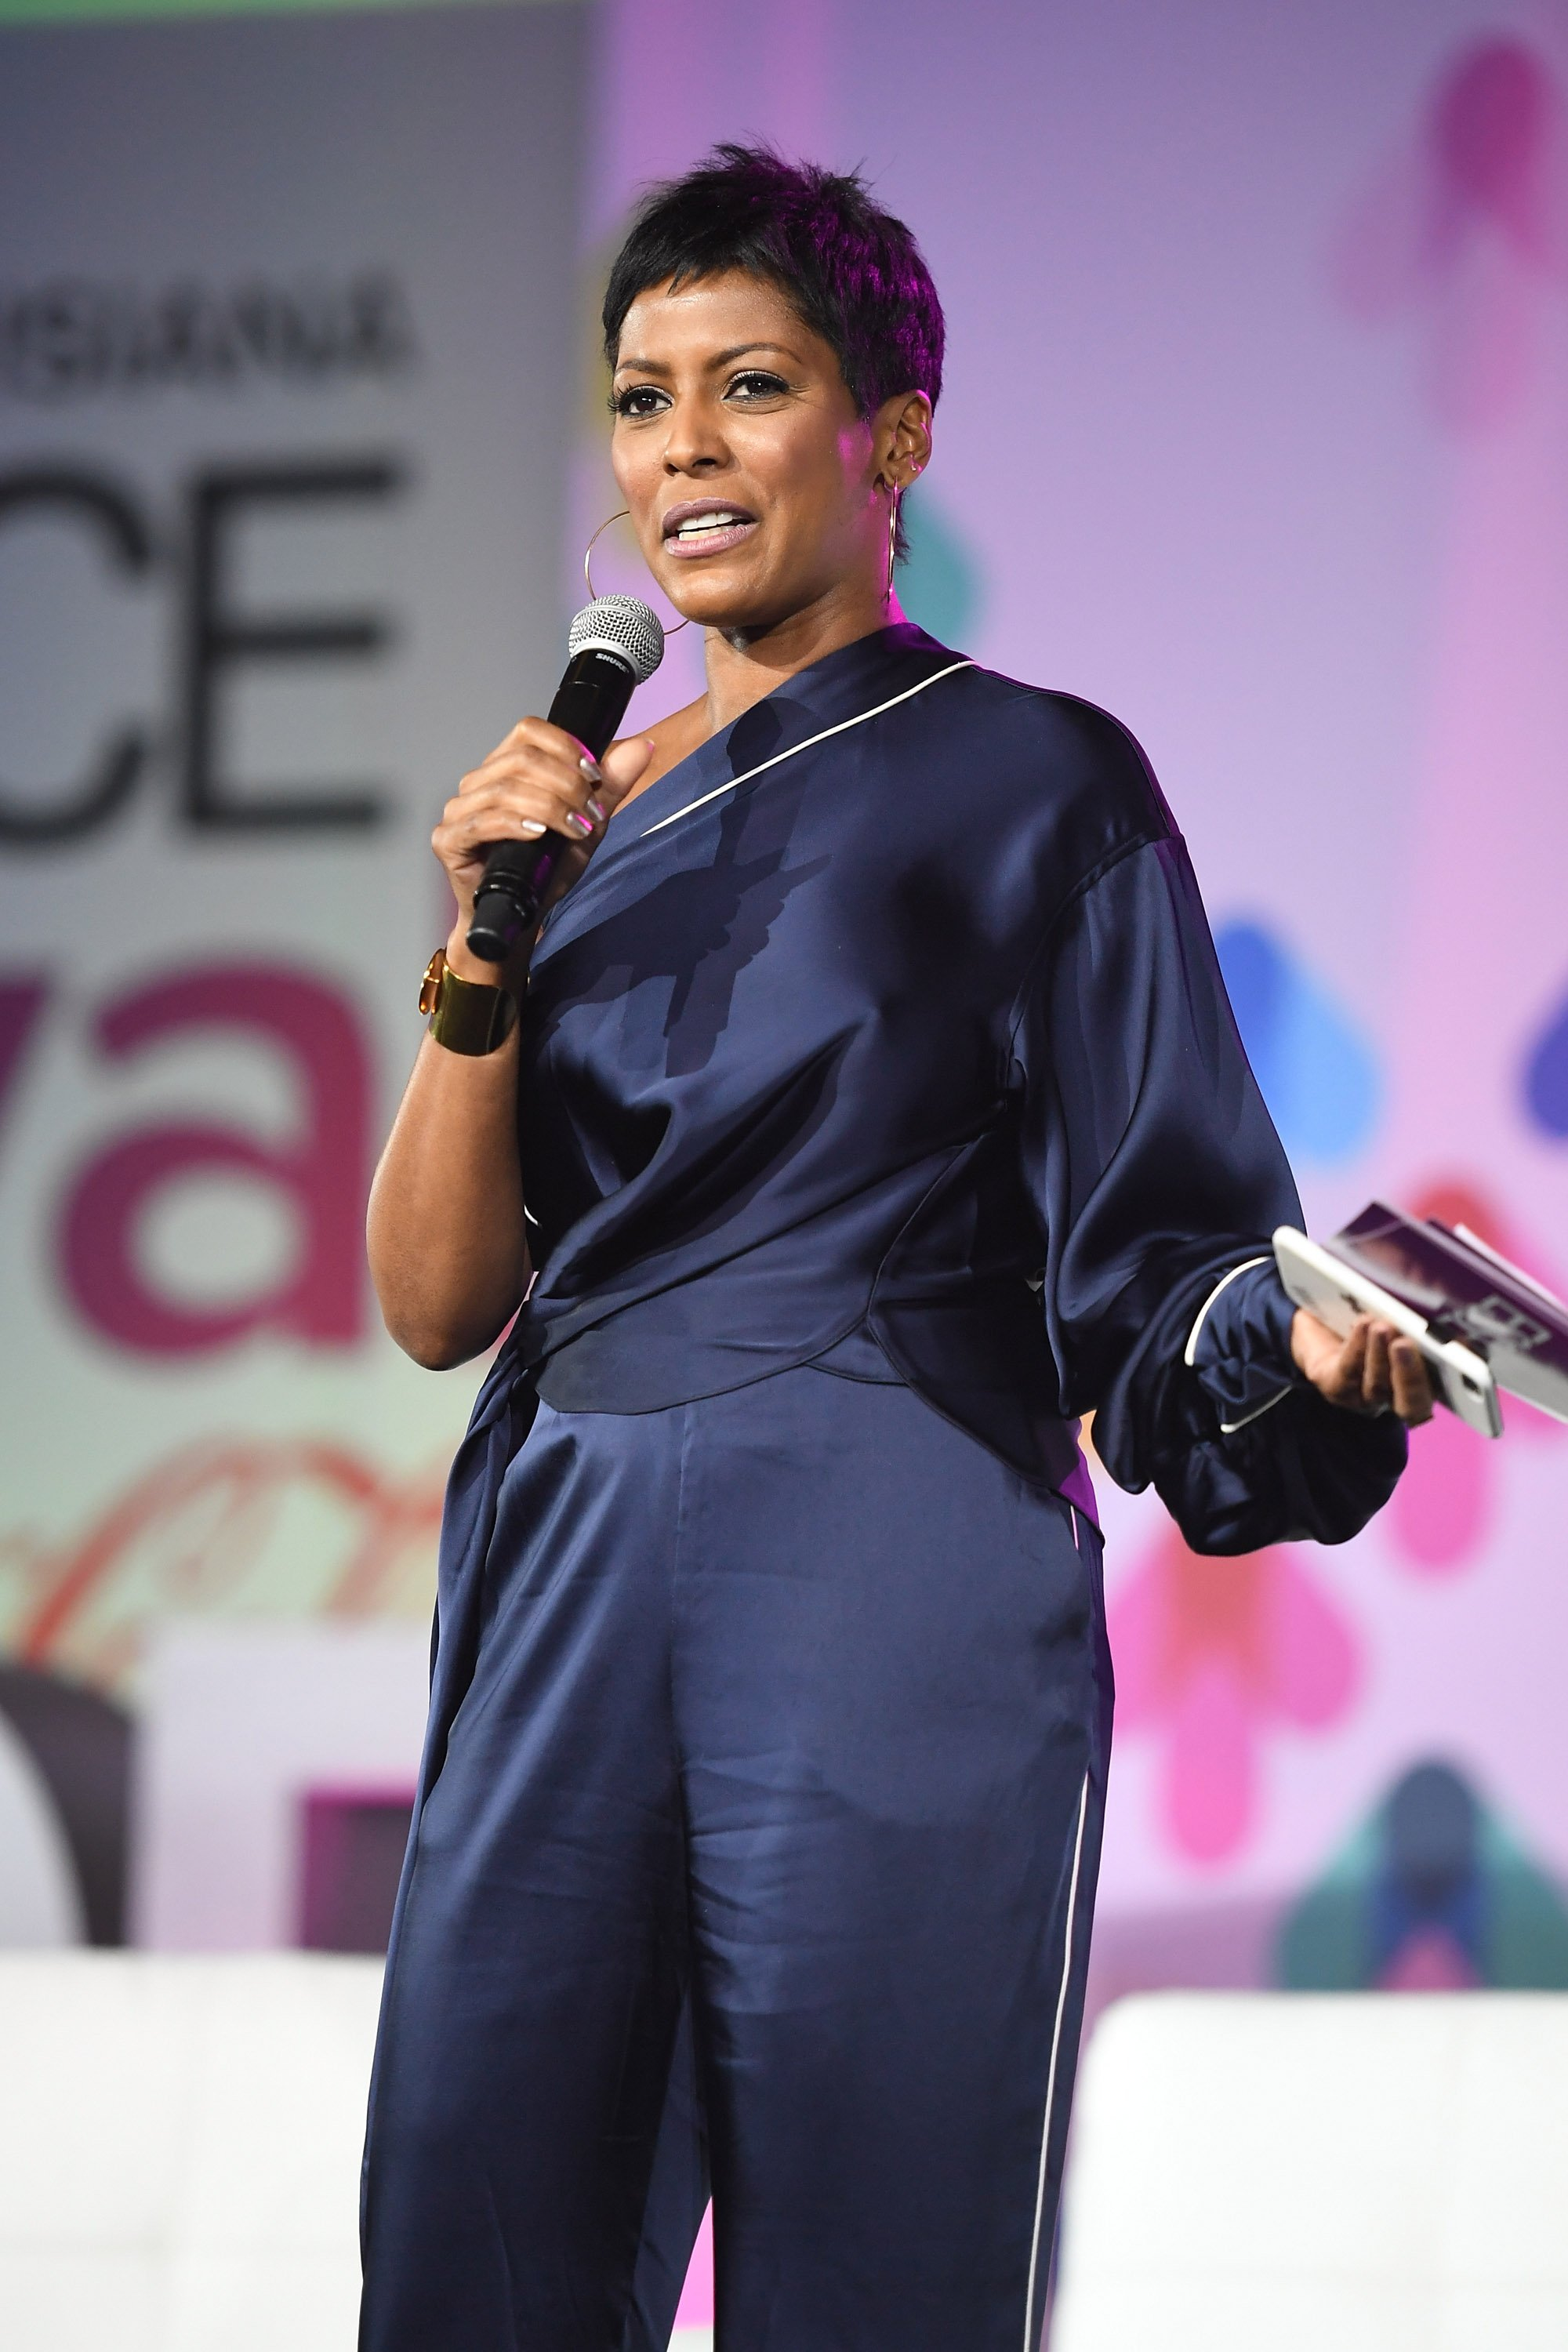 Tamron Hall speaks onstage at the 2017 ESSENCE Festival presented by Coca-Cola at Ernest N. Morial Convention Center on June 30, 2017 in New Orleans, Louisiana | Photo: GettyImages